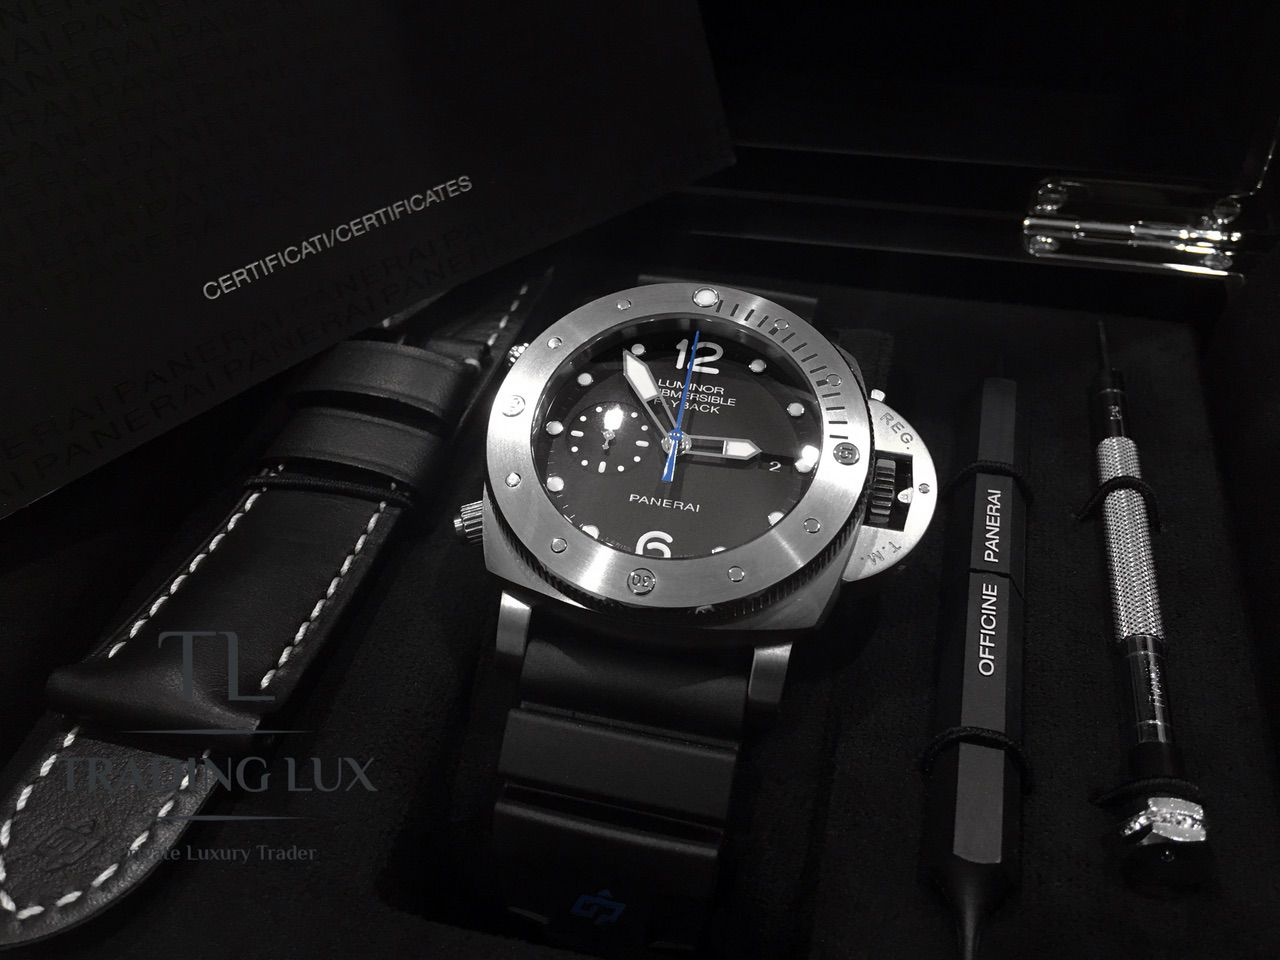 Panerai-Submersible-Chrono-PAM00614-13